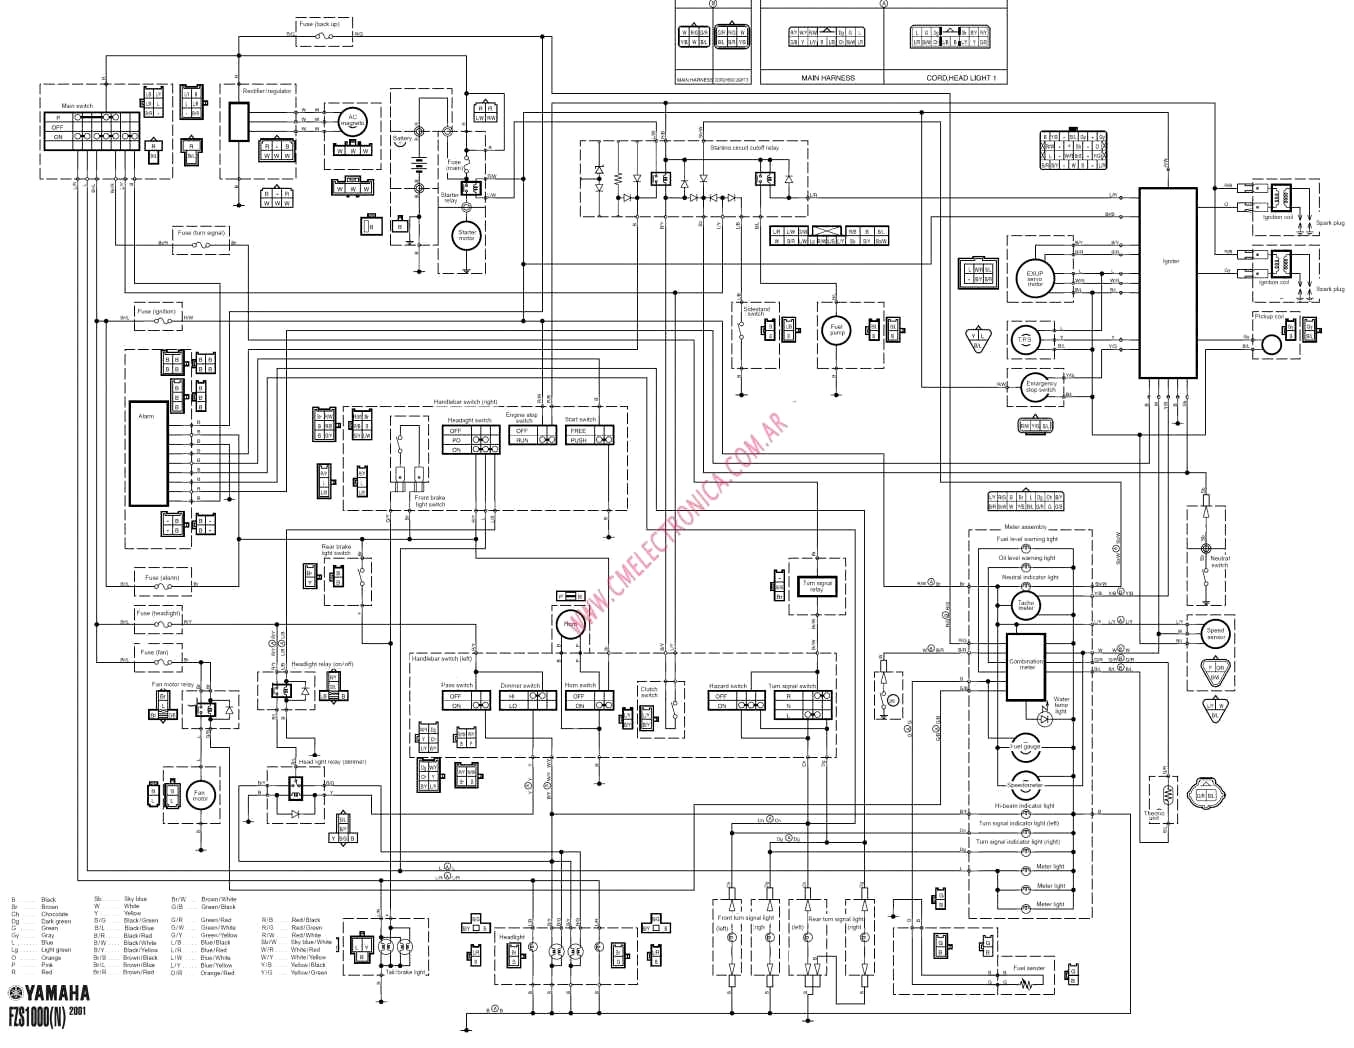 Harley Davidson Wiring Diagram | Free Wiring Diagram on 1994 evo diagram, sportster tail light cover, sportster voltage regulator wiring diagram, sportster tail light assembly, sportster generator wiring diagram, harley wiring harness diagram, harley turn signal wiring diagram, sportster chopper wiring diagram,